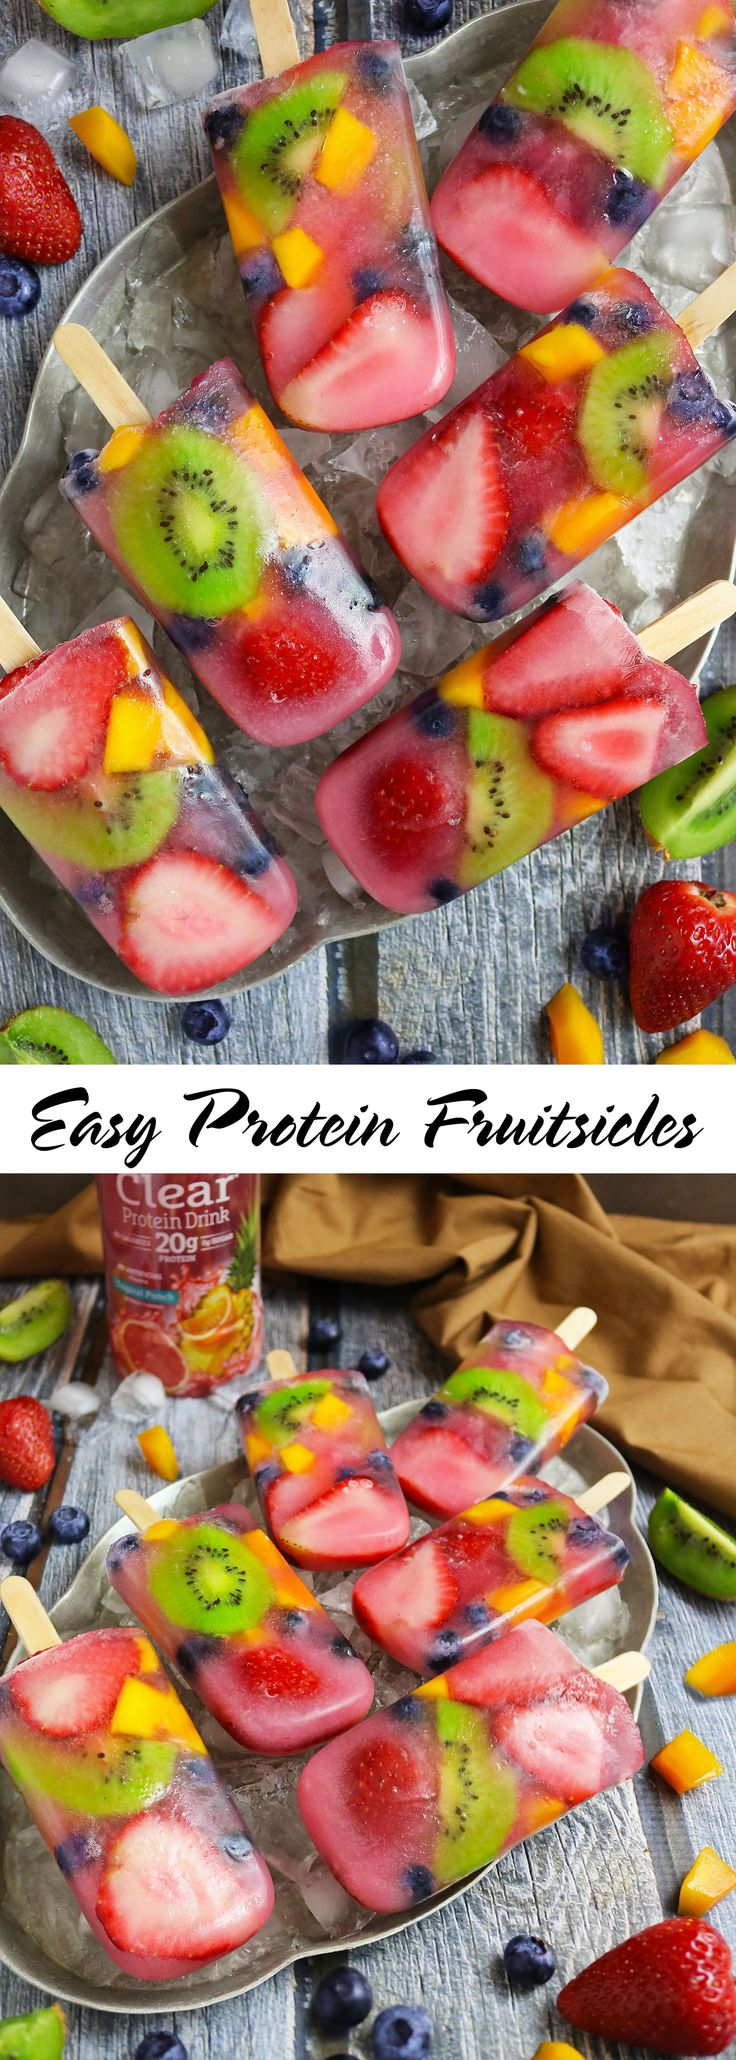 Easy Protein Fruitsicles with Premier Protein Clear Protein Drink #TheDayIsYours #Sponsored @PremierProtein